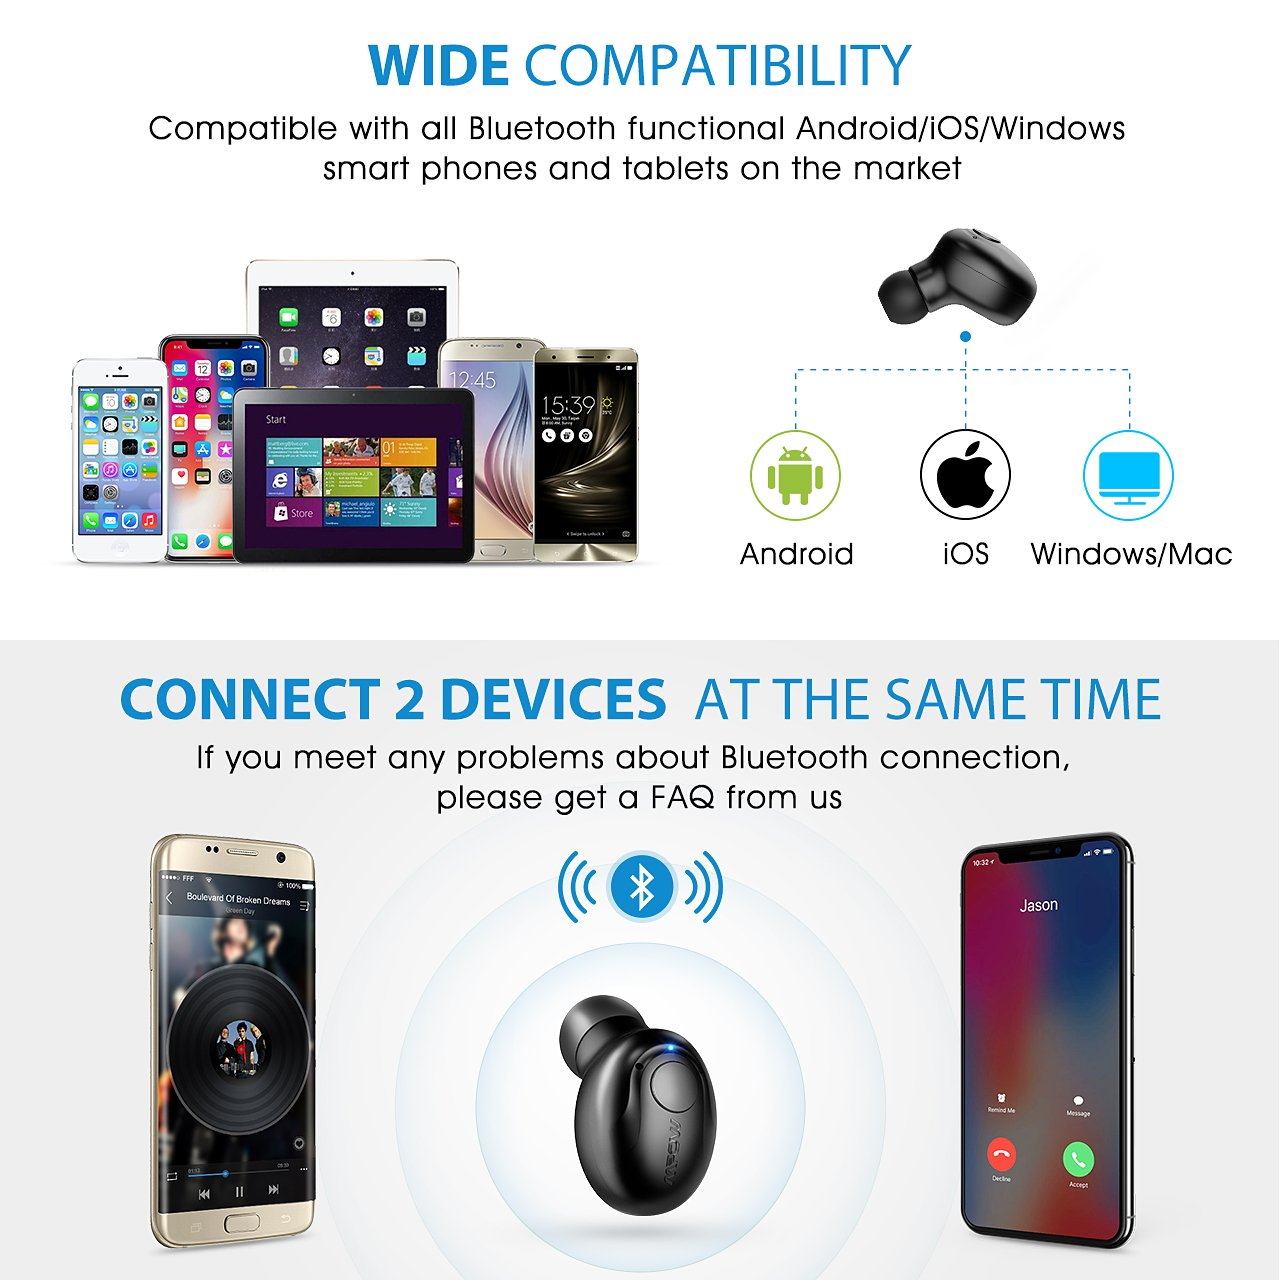 Mpow EM1 Bluetooth Earpiece, V4.1 Wireless Headphones, 6-Hr Playing Time Mini Bluetooth Earbud with Microphone, Invisible Car Bluetooth Headset for Cell Phone (One Pcs, Two Charger) by Mpow (Image #5)